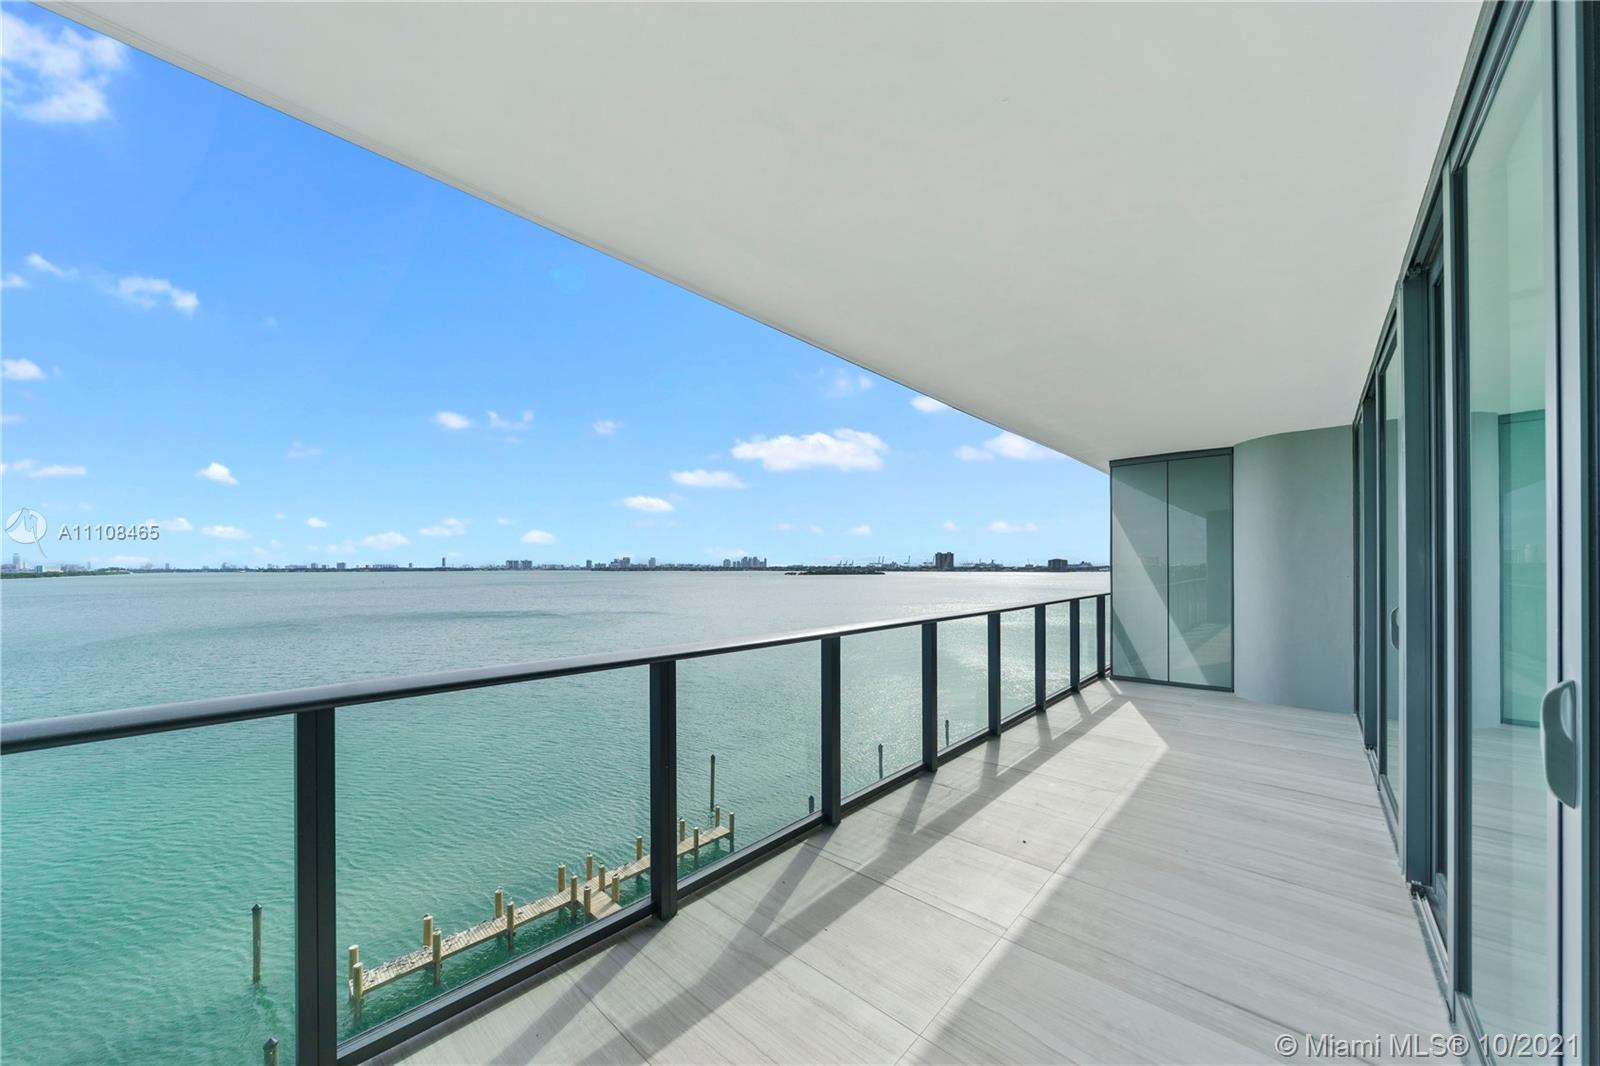 Spectacular BAYFRONT UNIT @ ONE PARAISO. 3 beds, 3.5 baths + den with private elevator to unit. Unit